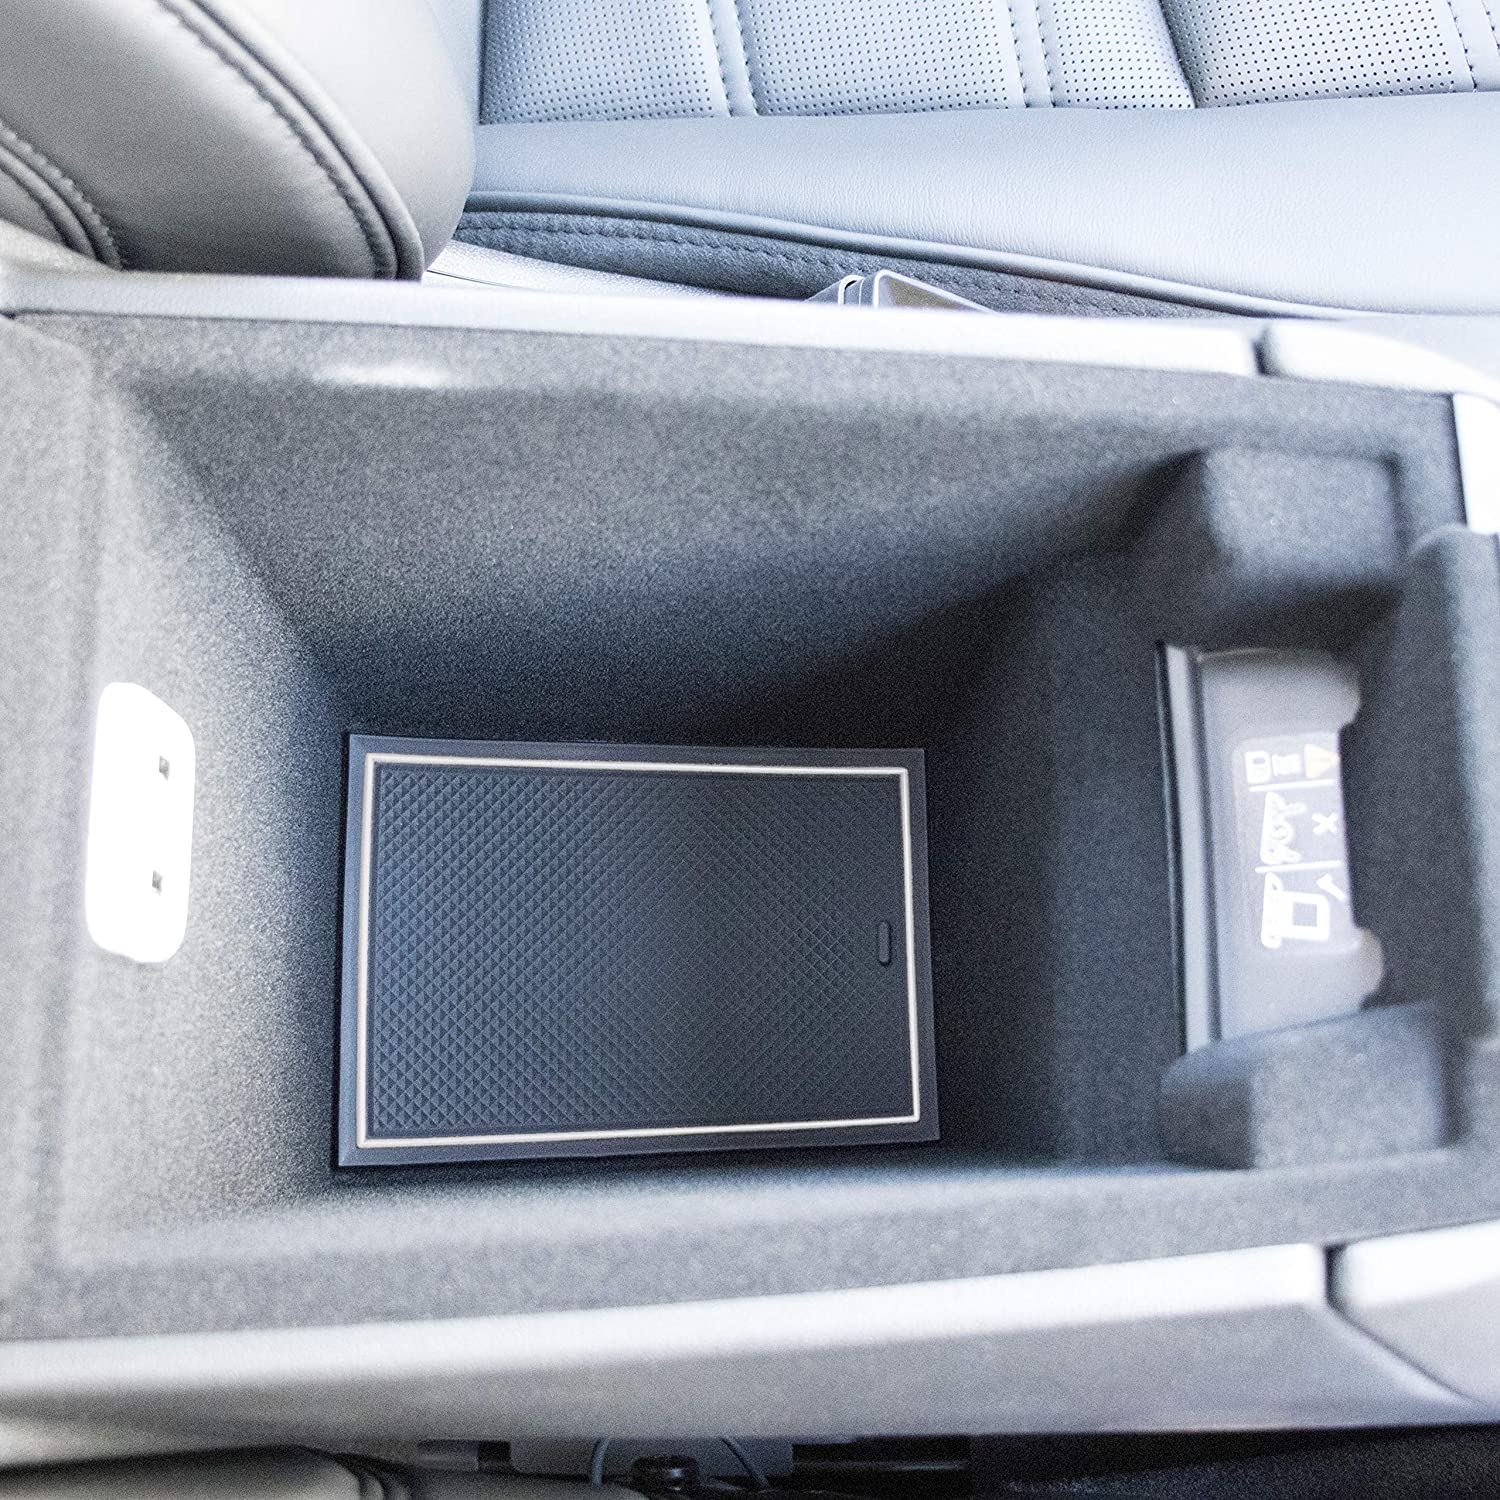 2007 2008 Honda Pilot Beige Loop Driver /& Passenger Floor GGBAILEY D2774B-F1A-BG-LP Custom Fit Car Mats for 2006